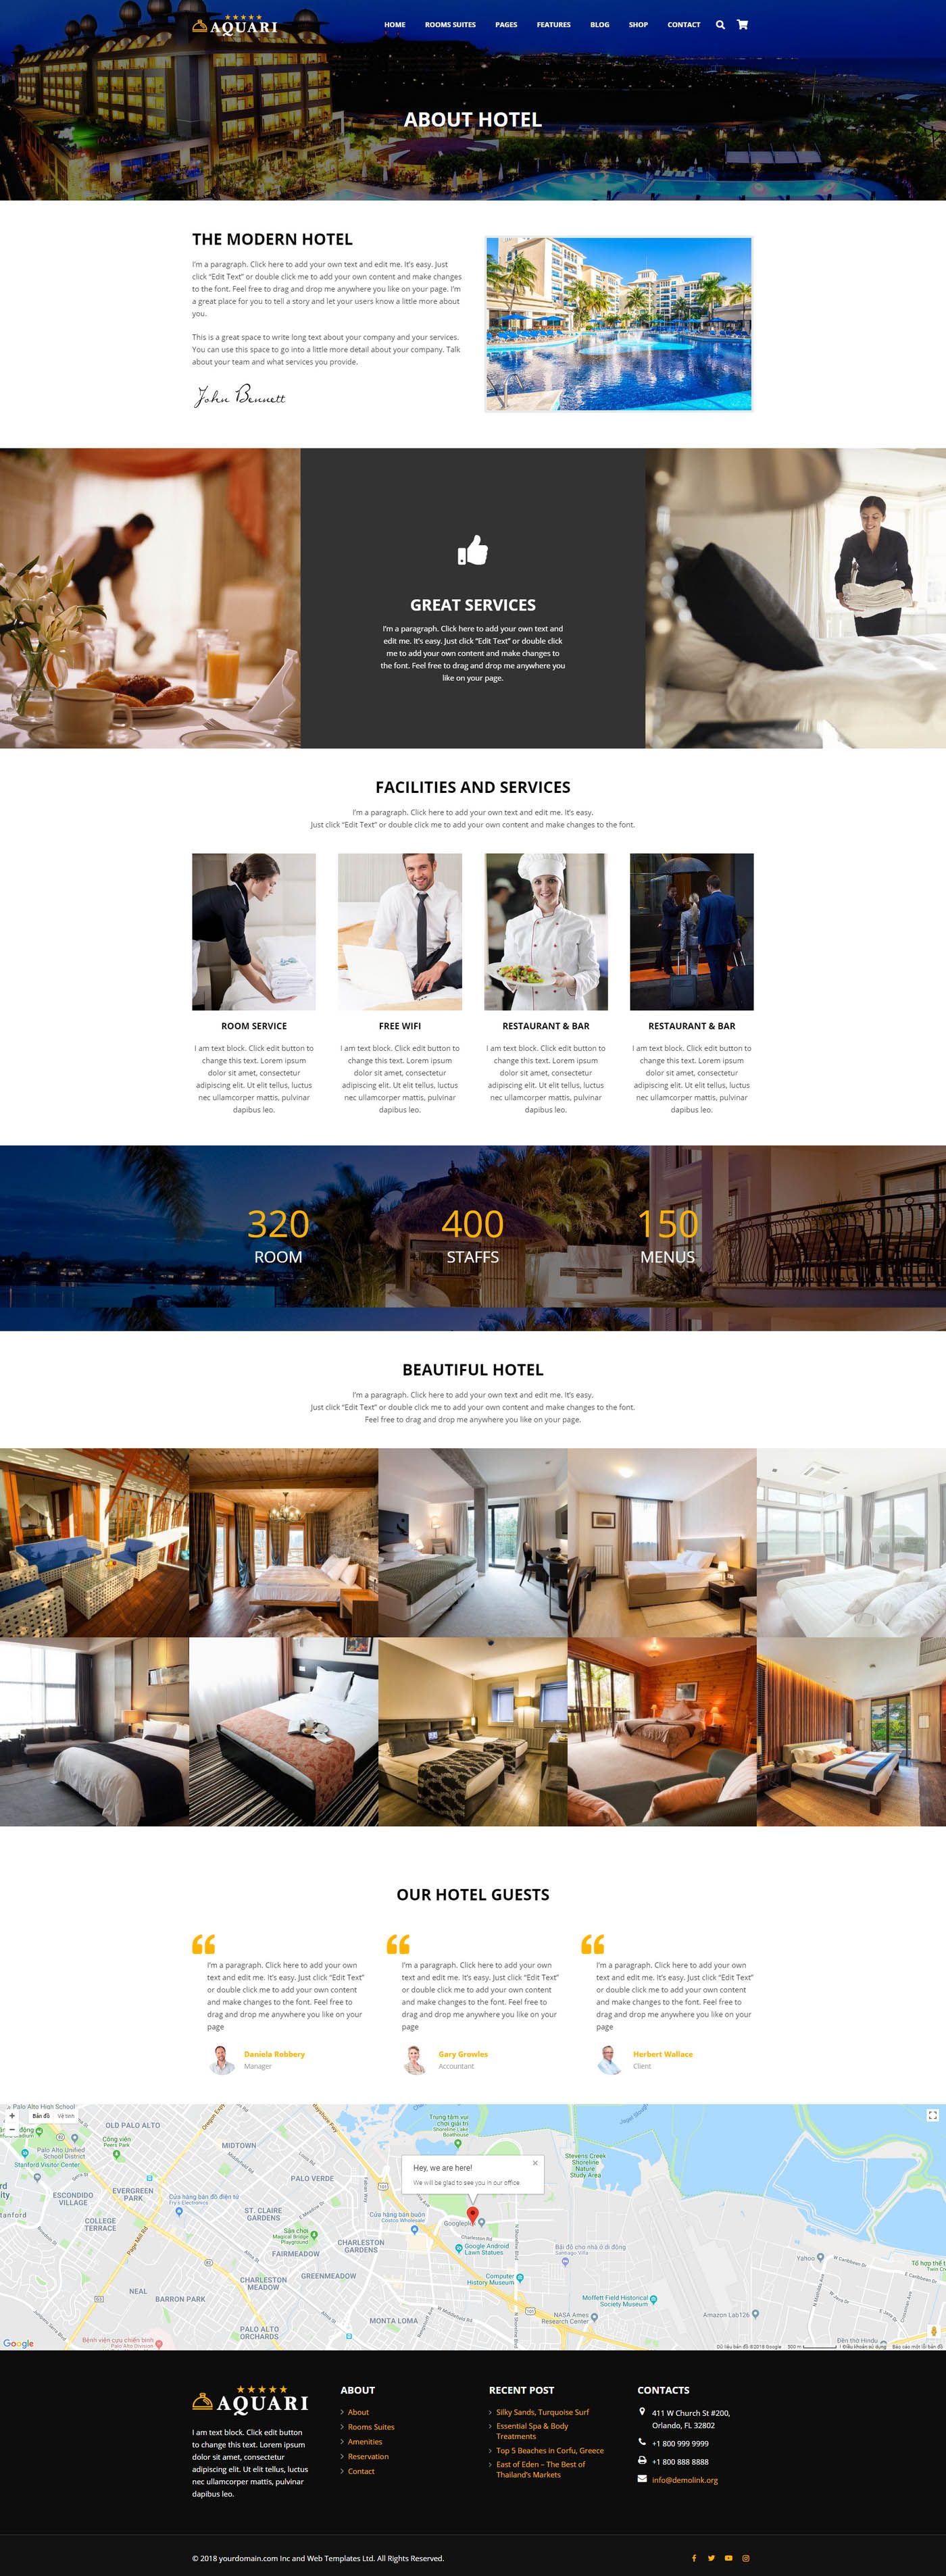 Aquari - Hotel Wordpress Theme Screenshot 1